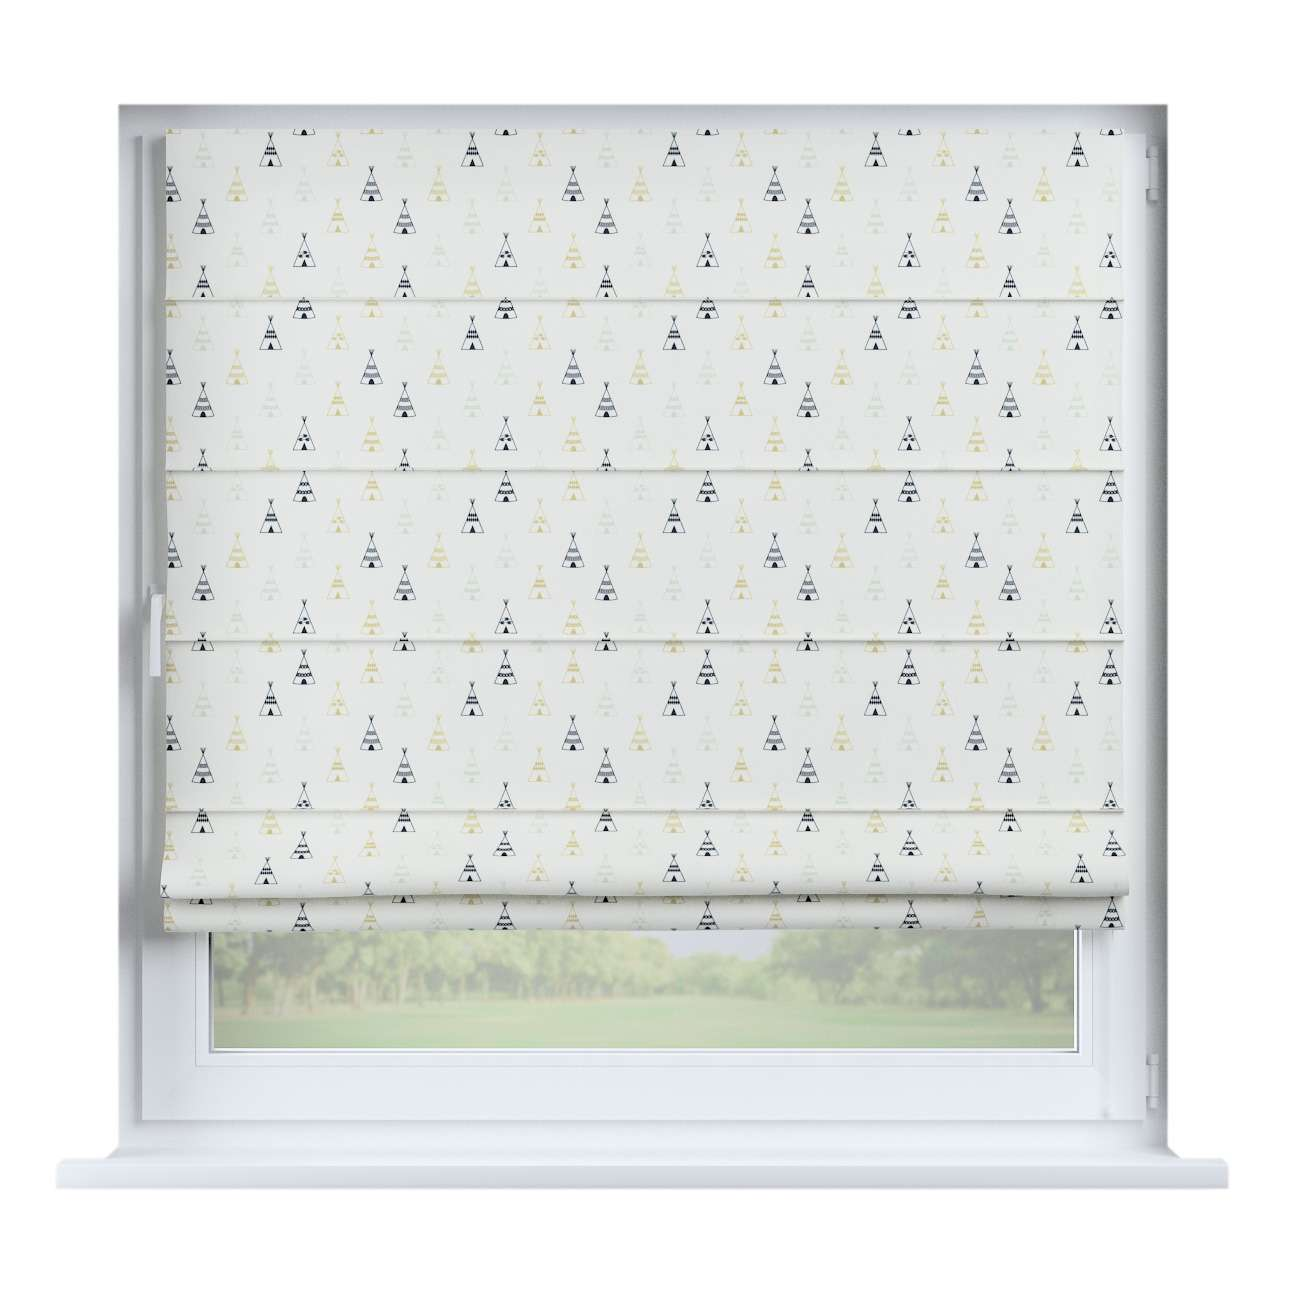 Capri roman blind in collection Adventure, fabric: 141-84